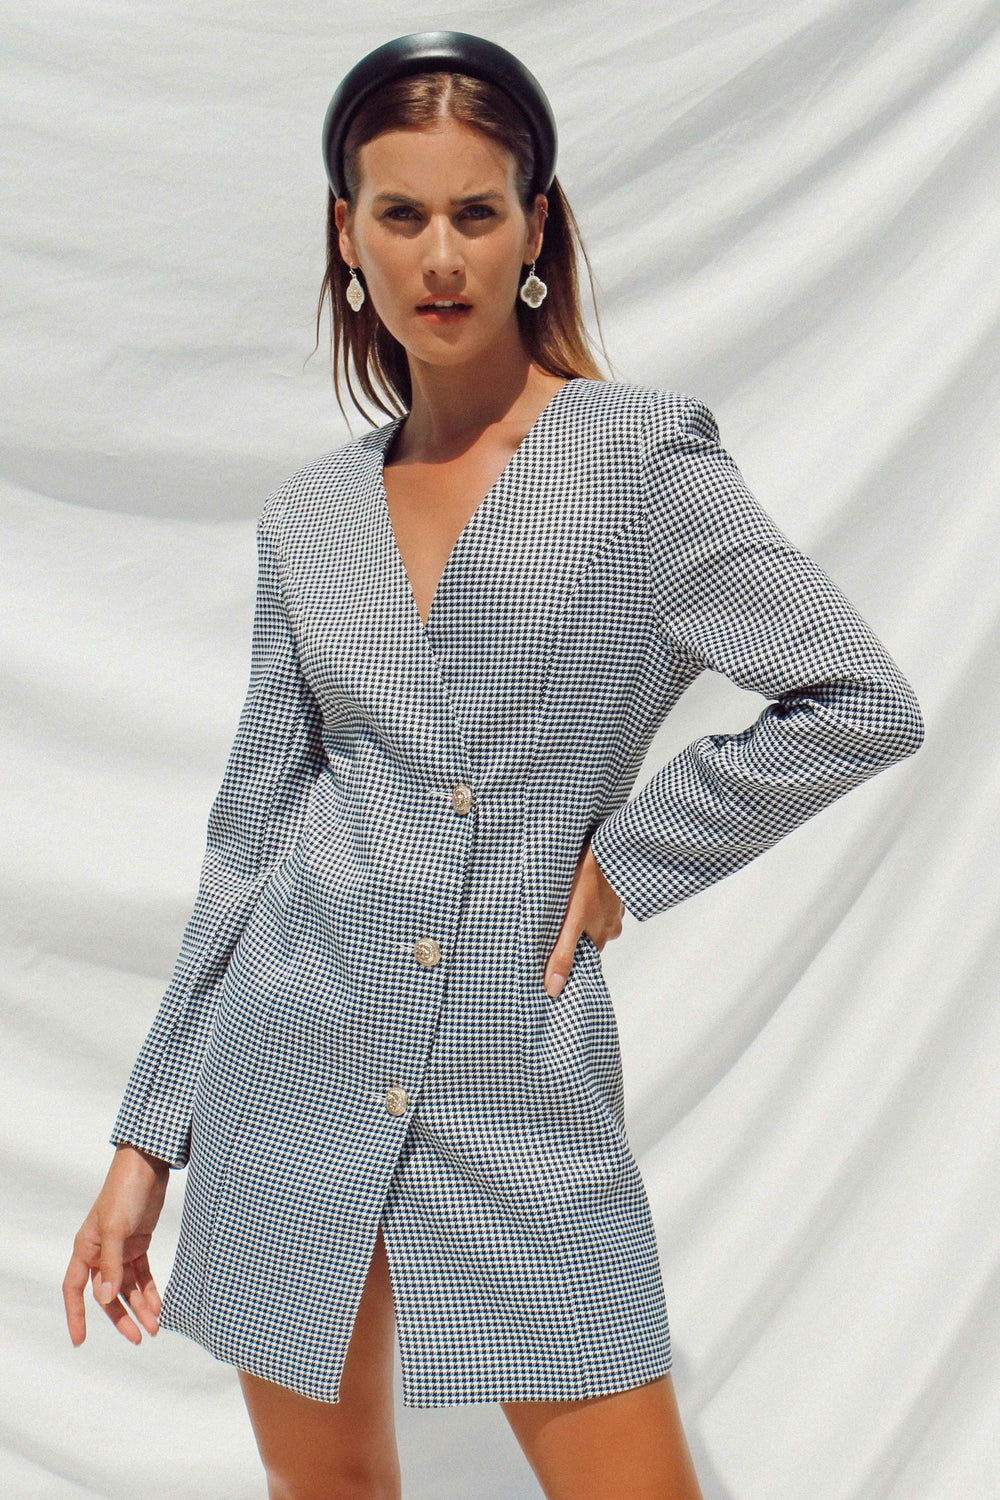 BLAKELY BLAZER DRESS - Chic Le Frique